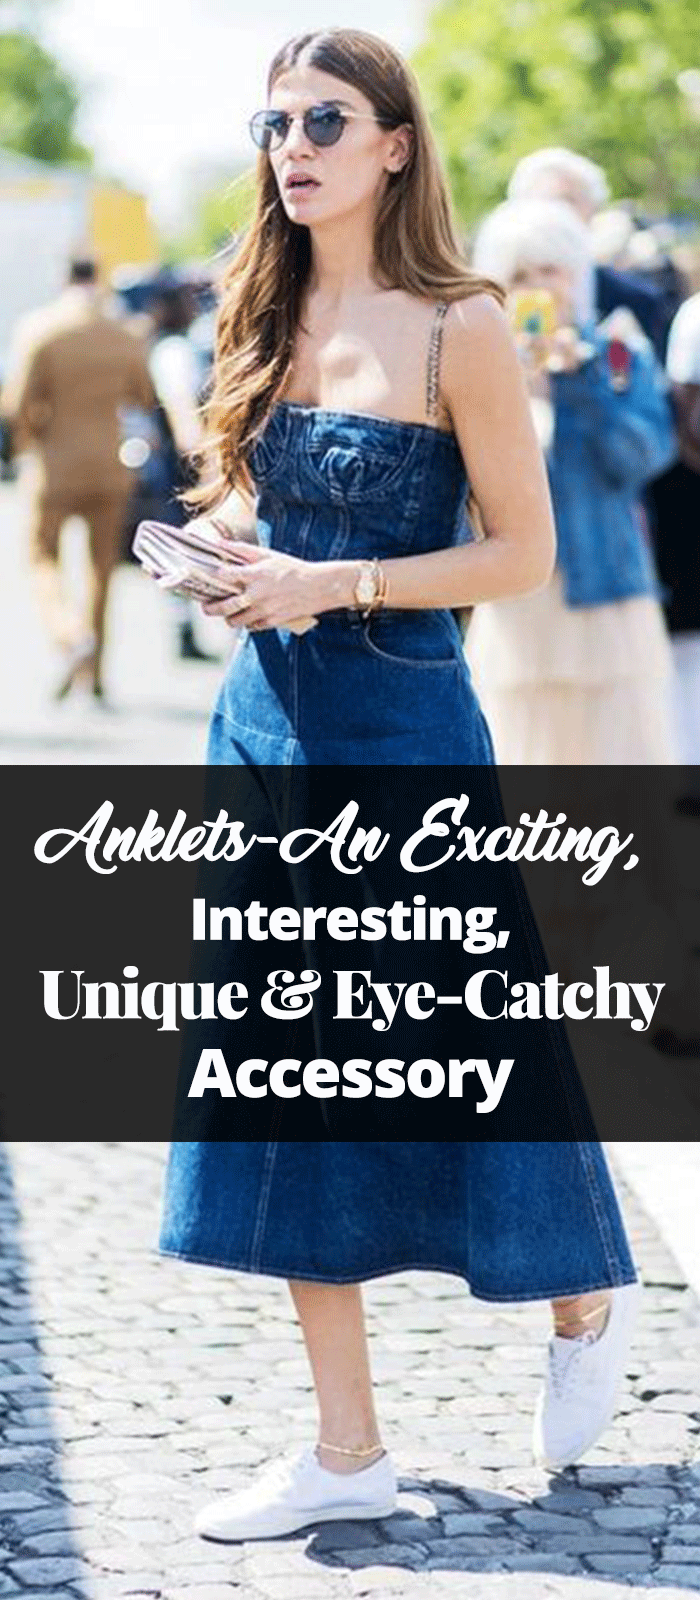 Anklets- An Exciting, Interesting, Unique & Eye-Catchy Accessory